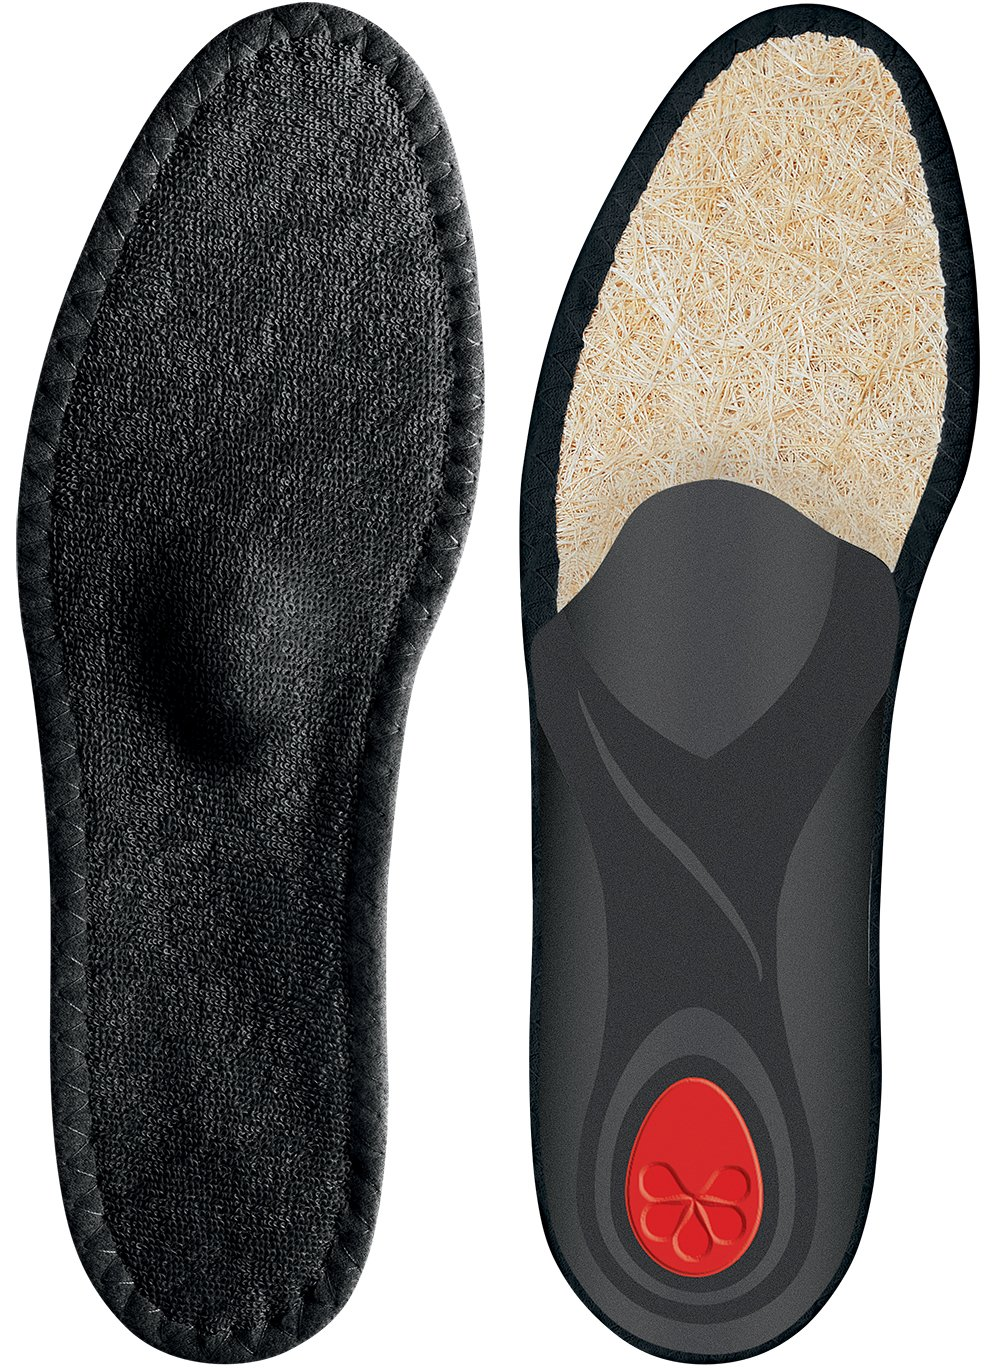 Pedag Viva Summer Black-Viva Sneaker Warm Weather Orthotic with Semi Rigid Arch, Met and Heel Pad, Black, M12/EU45